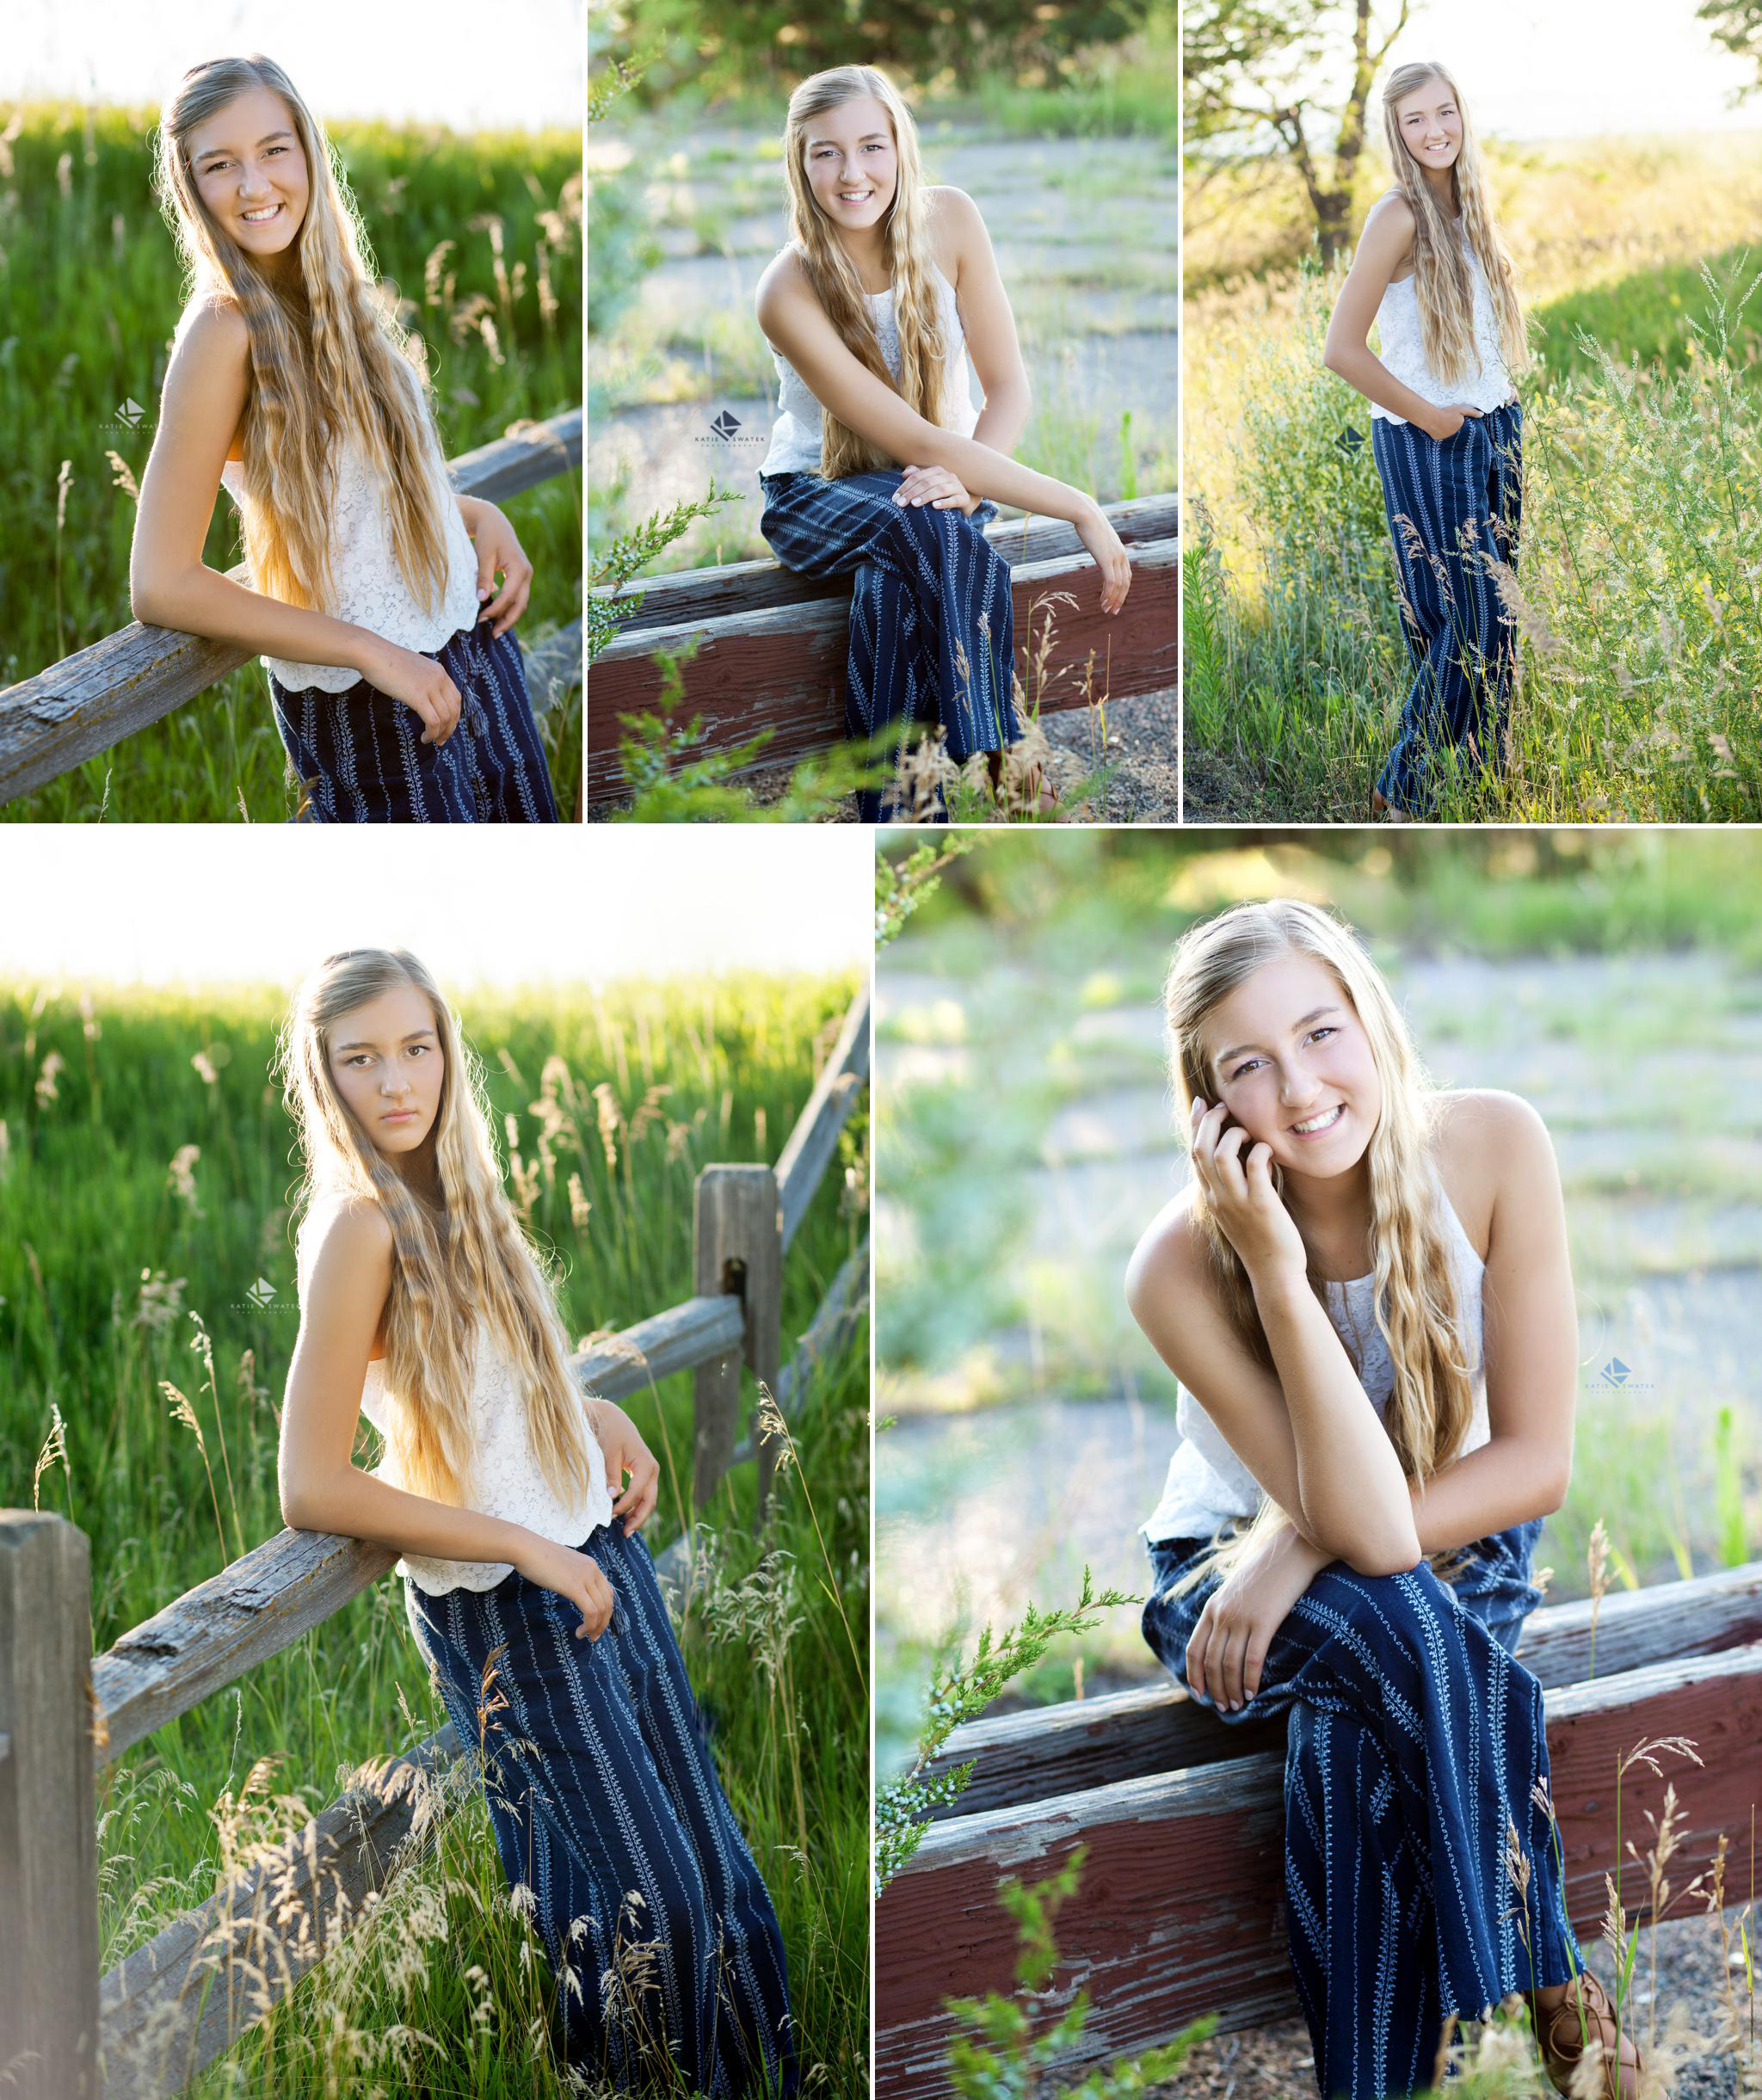 blonde senior girl in a lace white top with navy boat pants posing in tall grass